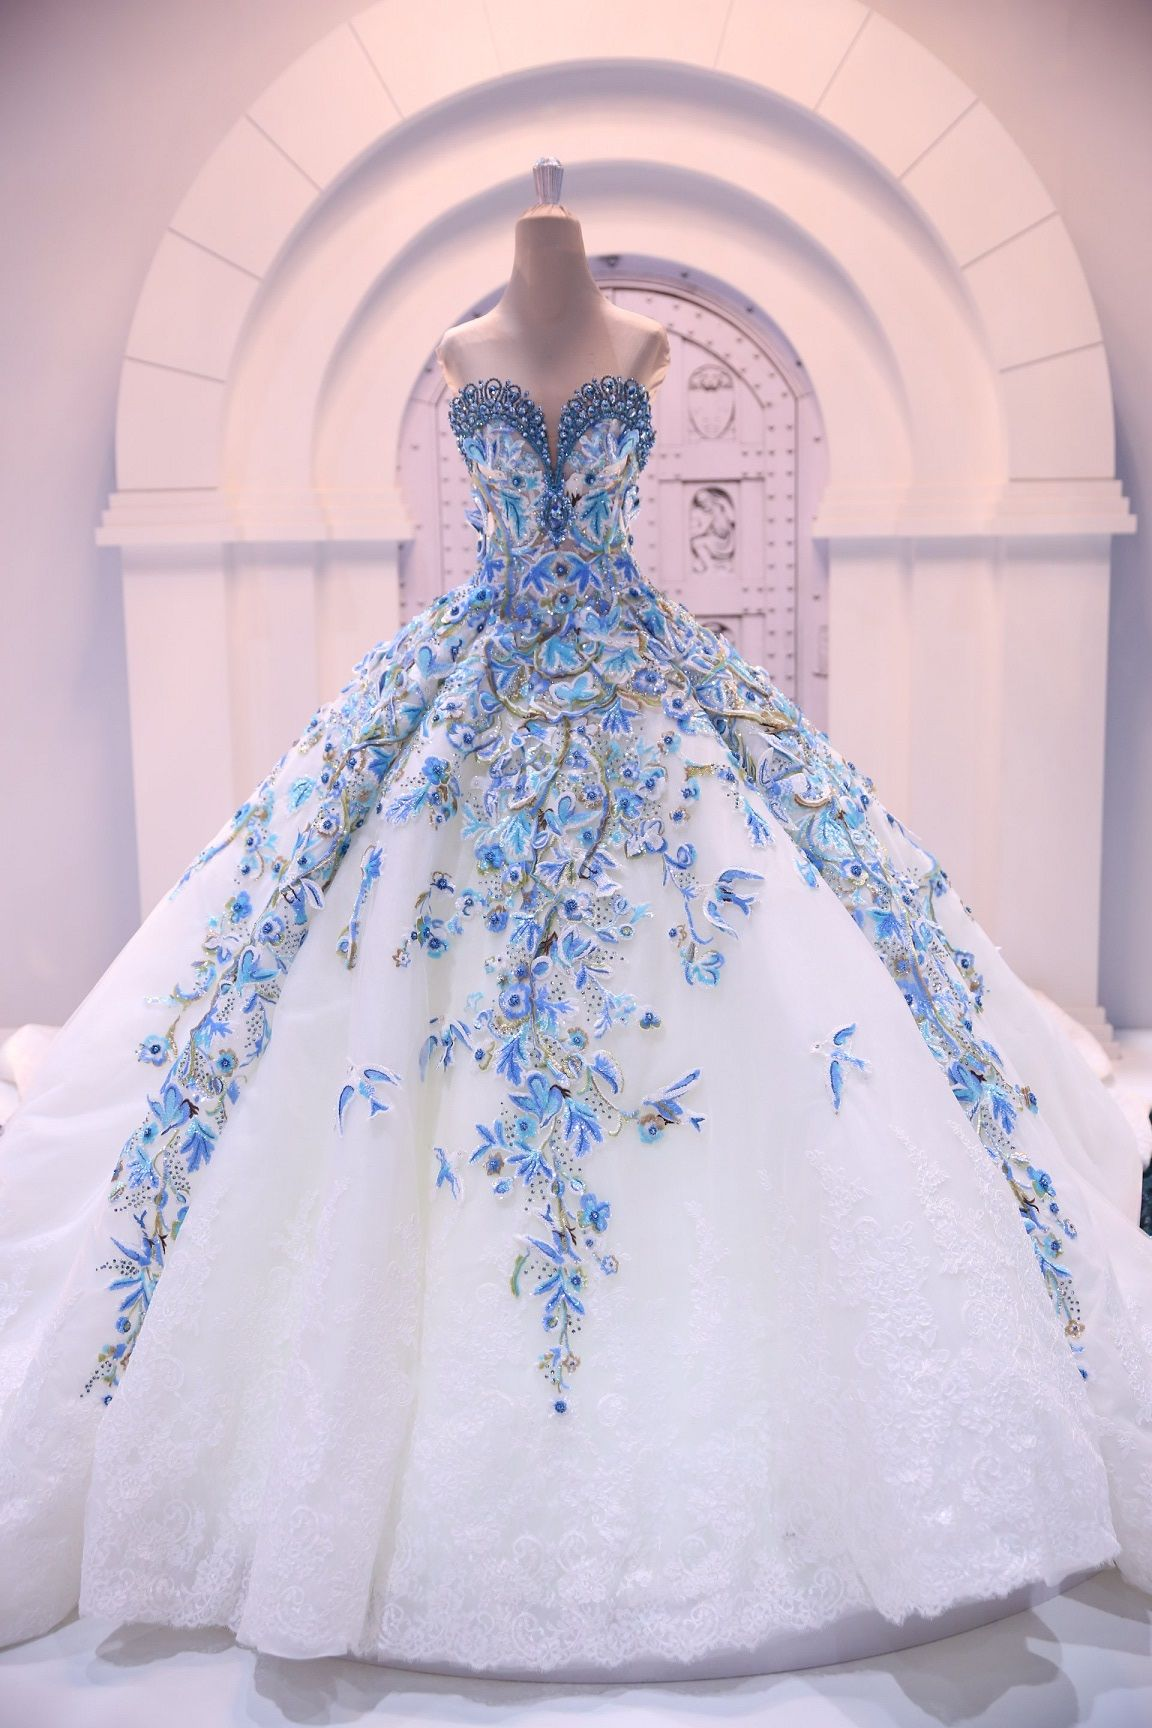 White and blue wedding dresses  landybridalblog What a stunning bride dress You can find more